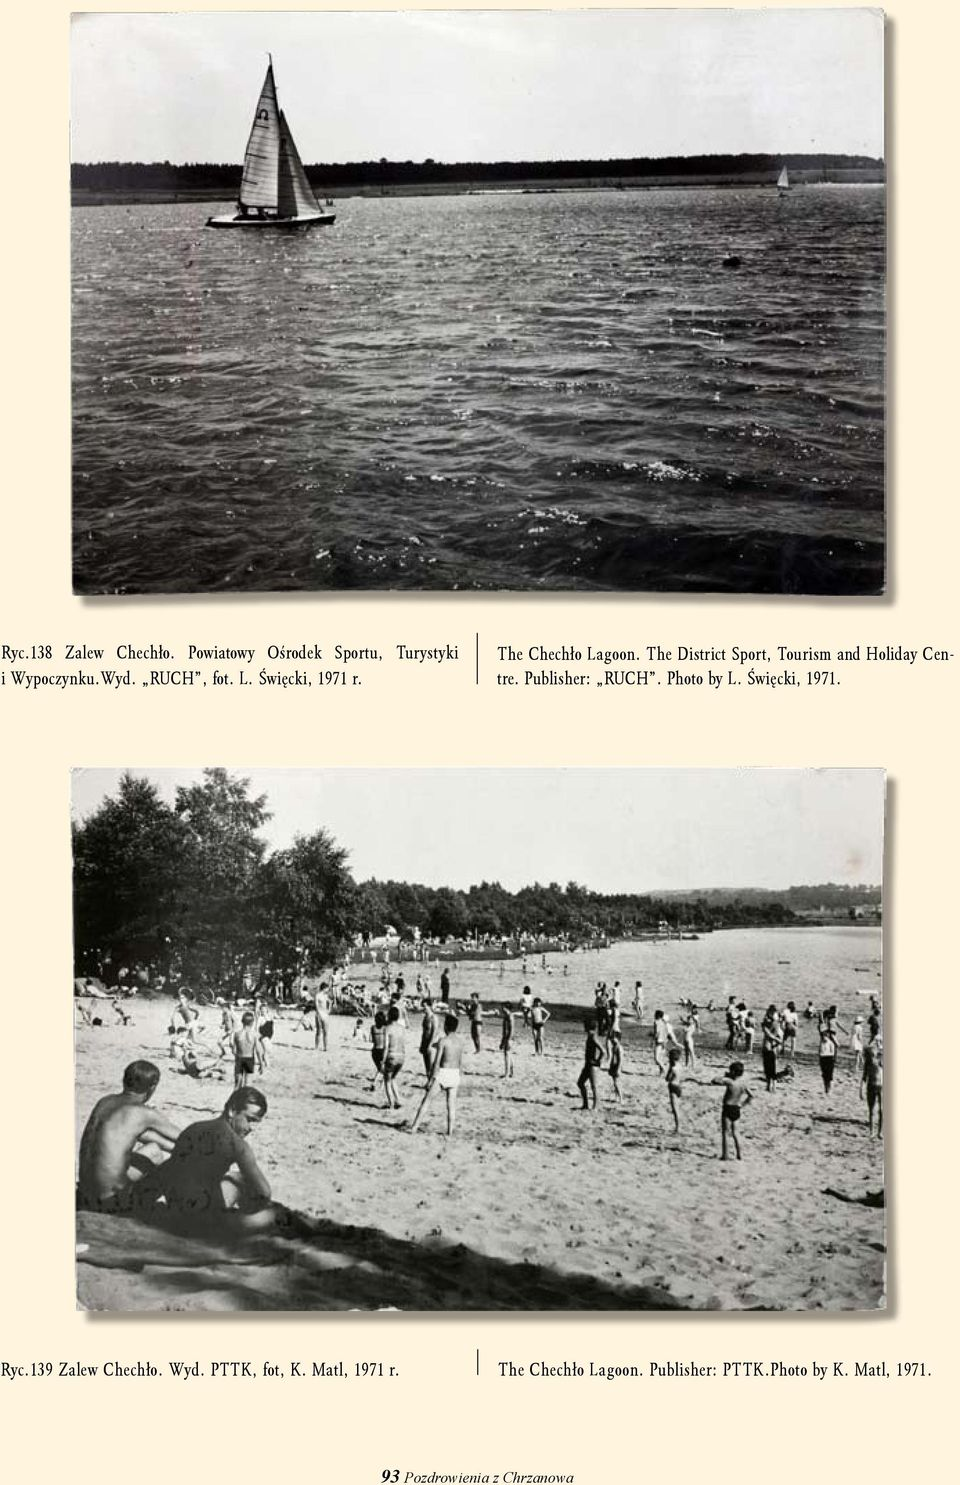 Publisher: RUCH. Photo by L. Święcki, 1971. Ryc.139 Zalew Chechło. Wyd. PTTK, fot, K.